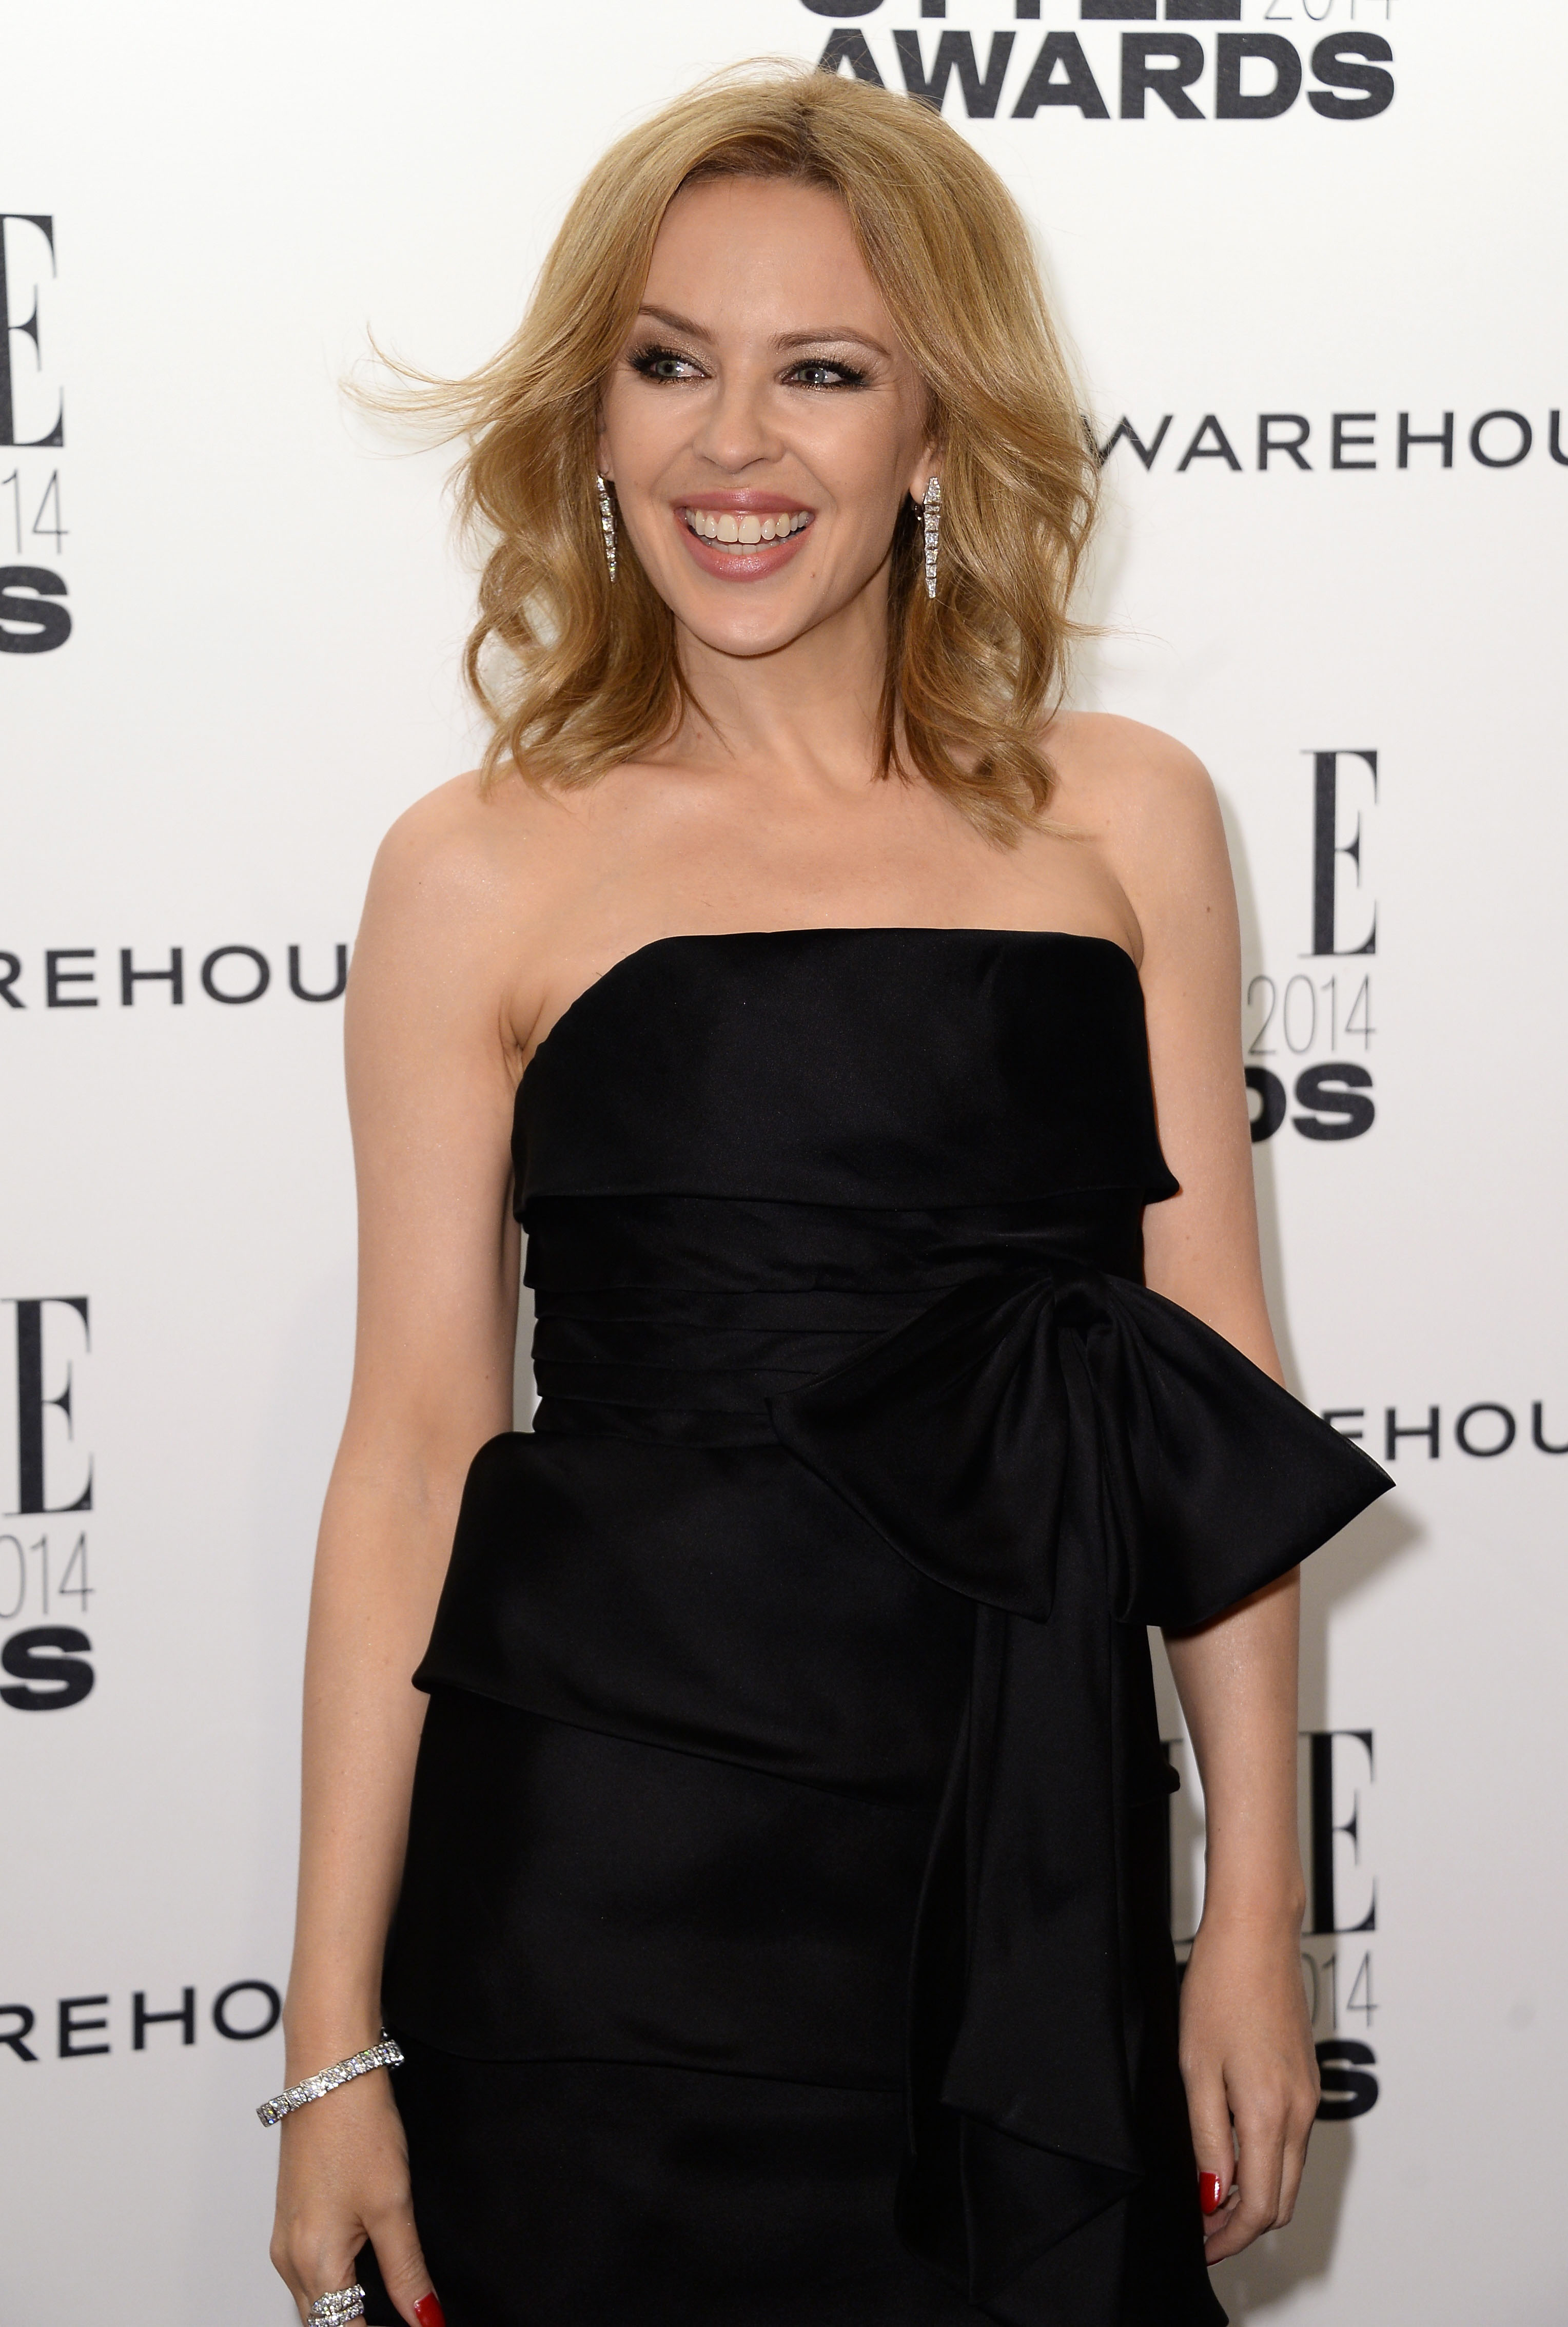 Kylie Minogue says former lover Michael Hutchence was responsible for 'so many firsts'